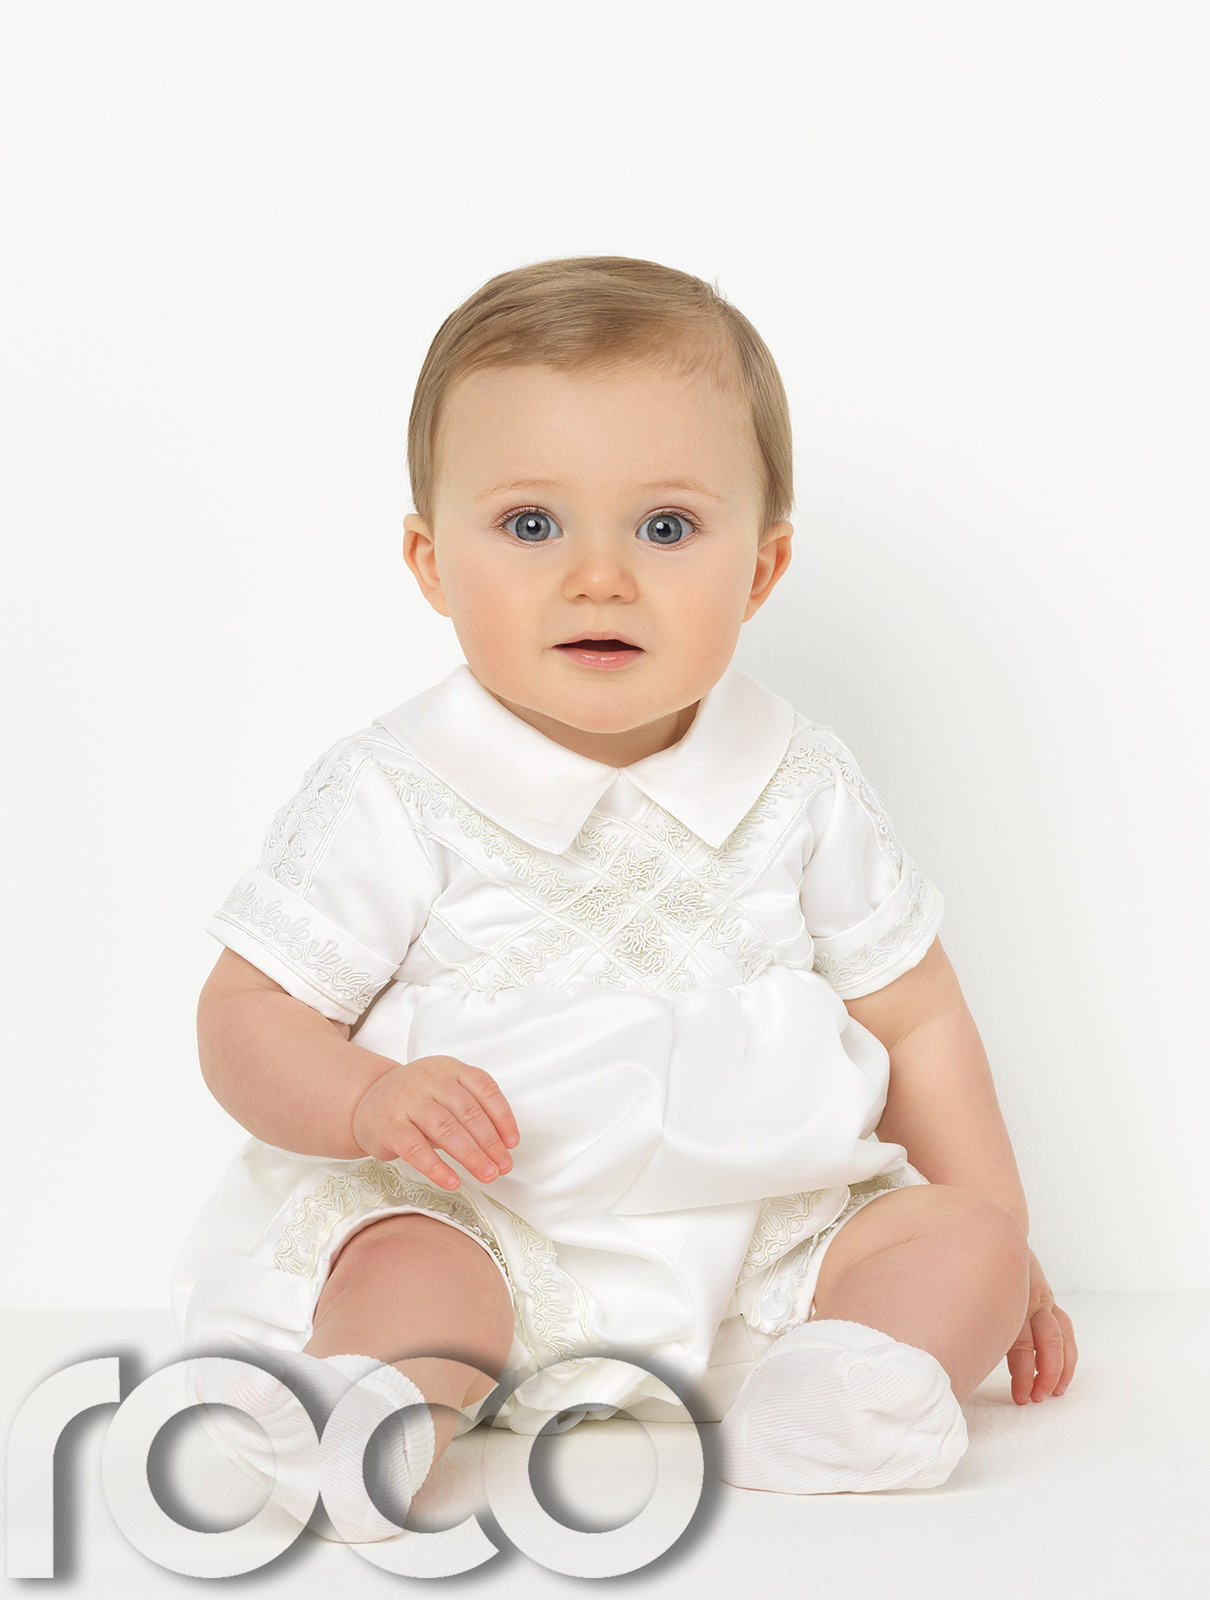 Boys Baby Rompers could not be cuter! Buy your favorite color, style, and brand at coolnup03t.gq Free Shipping - Macy's Star Rewards Members.